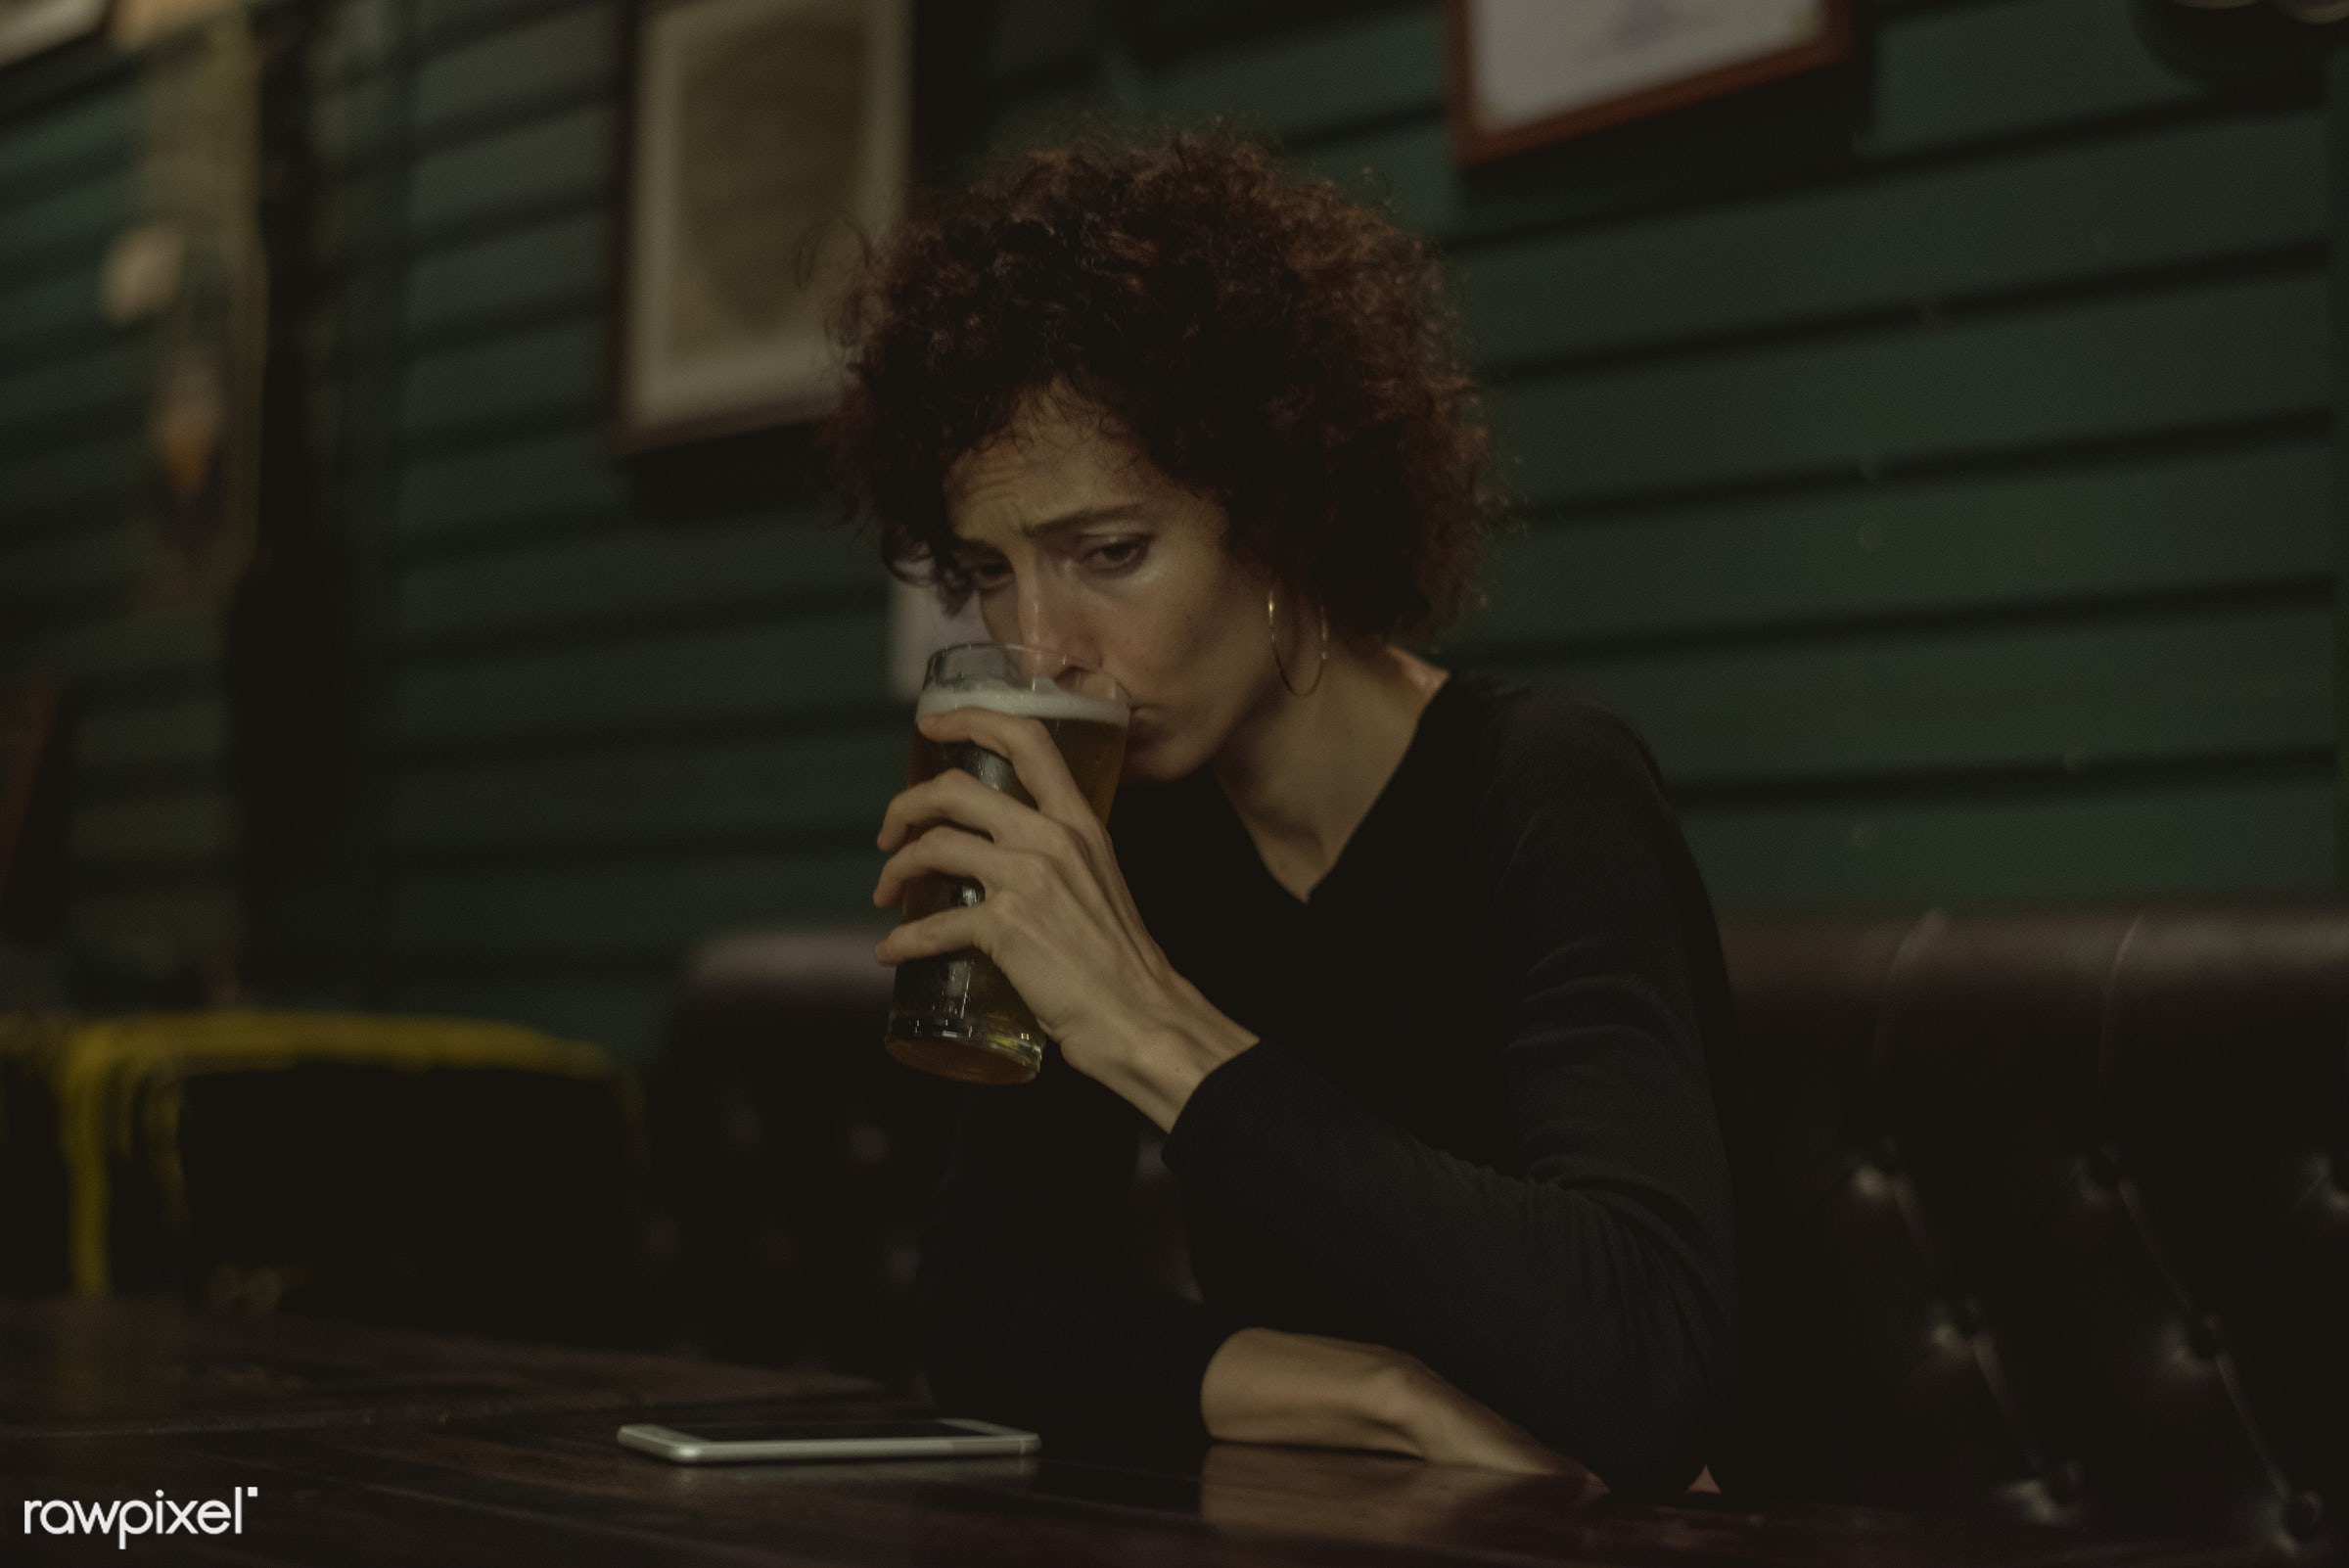 Woman having a beer at a bar - alcohol, alone, bar, beer, beverage, communication, connection, curly hair, dark, depressed,...